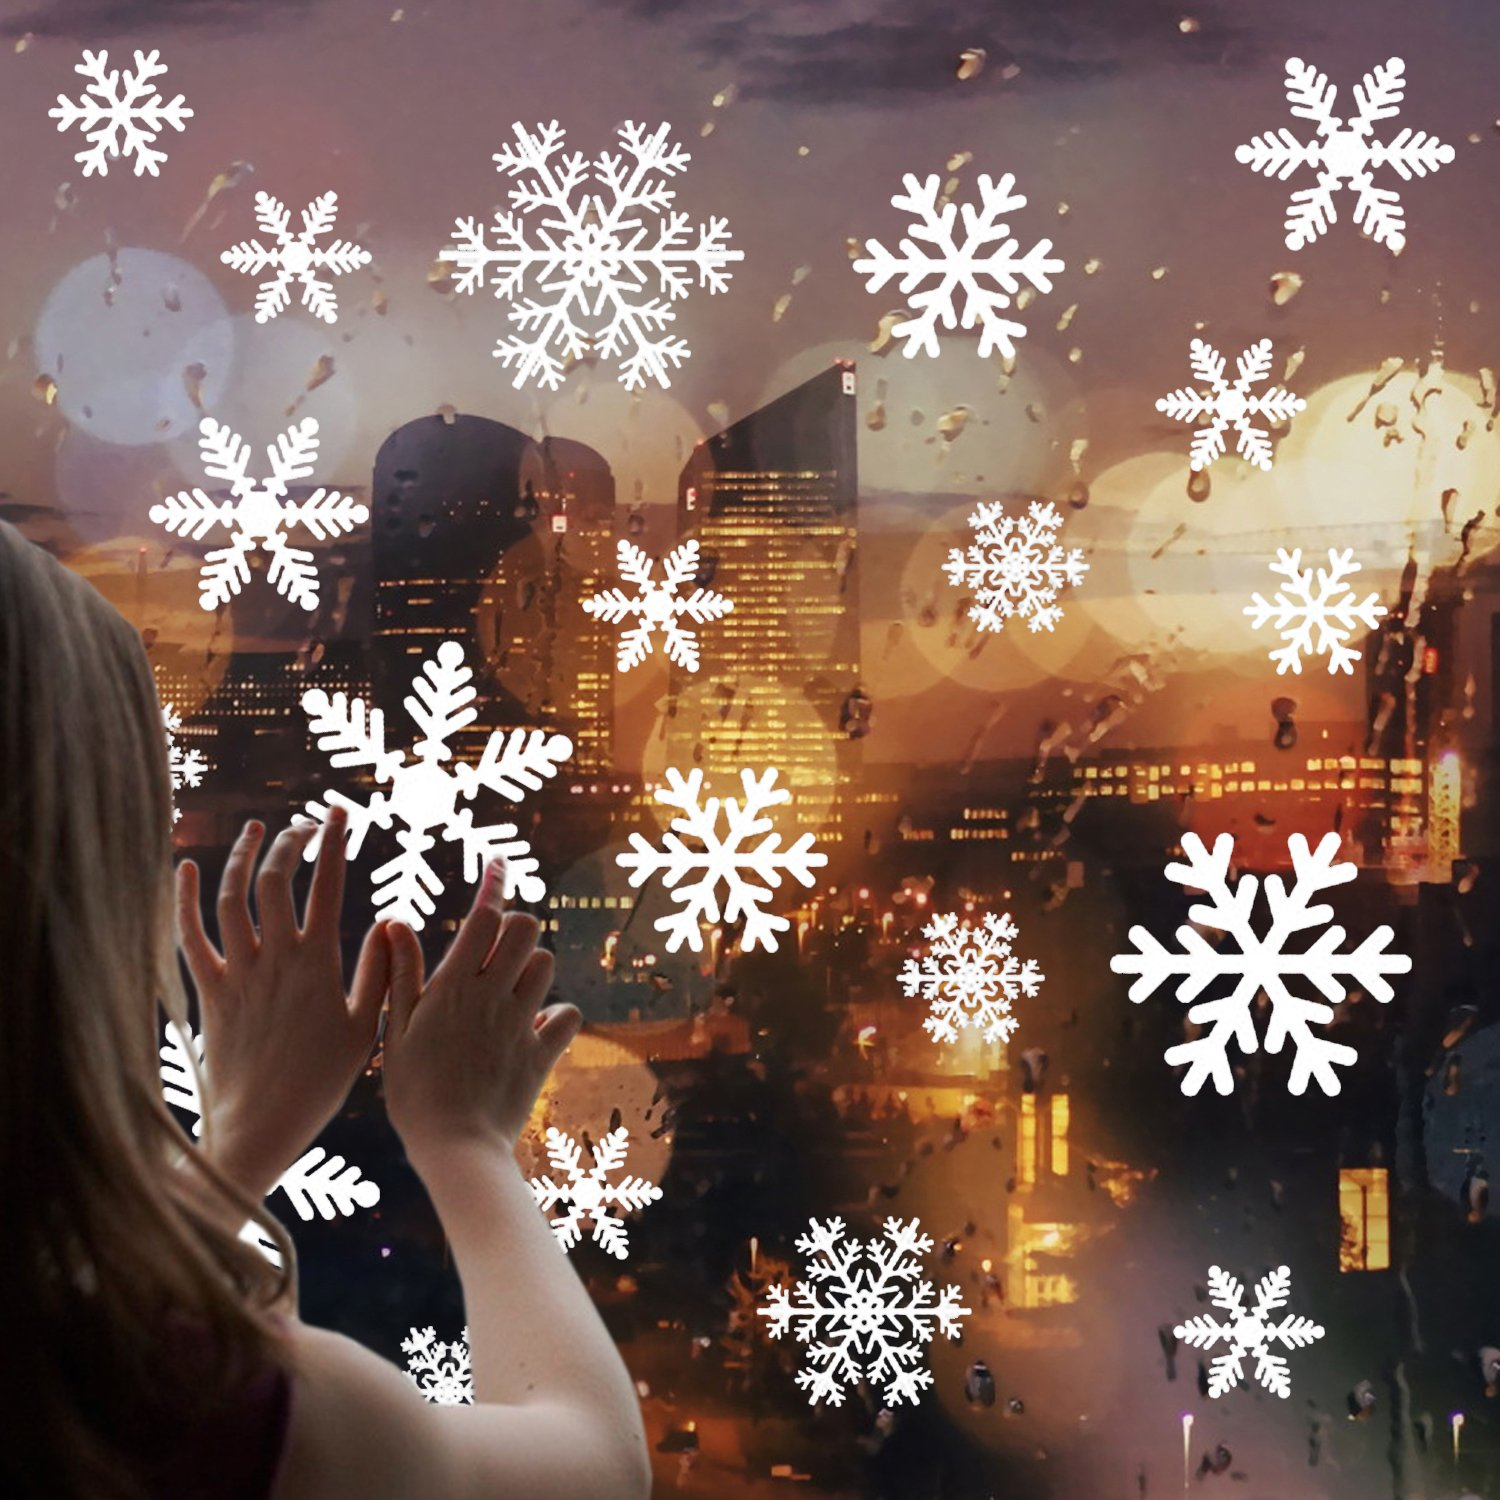 Shxstore Christmas Window Decorations Clings Decal Glass Stickers Of Snowflake Moon Castle Reindeer Christmas Tree For Holiday Winter Decoration Supplies